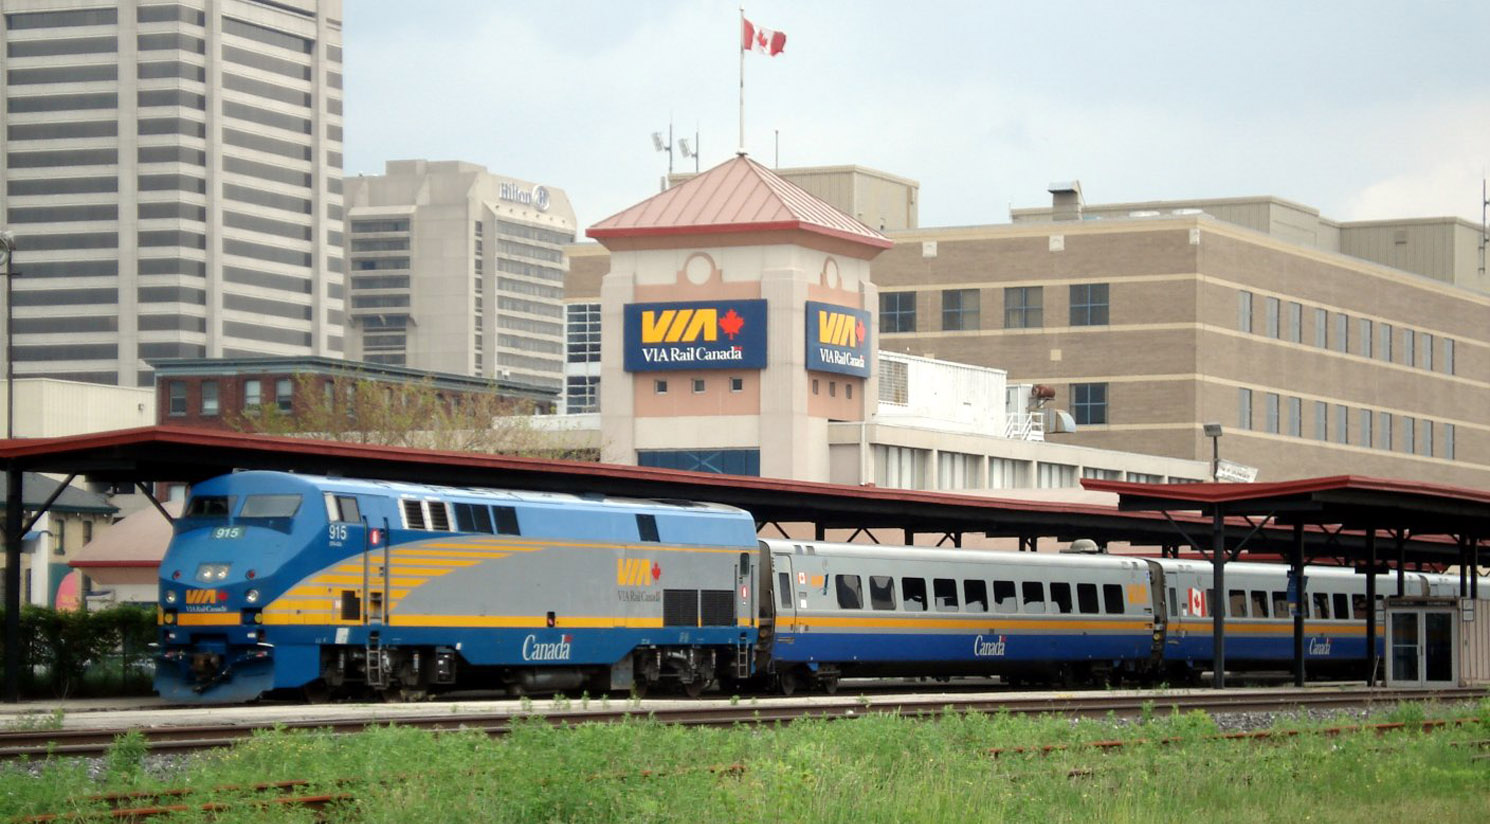 VIA Rail High Speed Rail Track Standards (Classes 1 to 5 and 6 to 9)